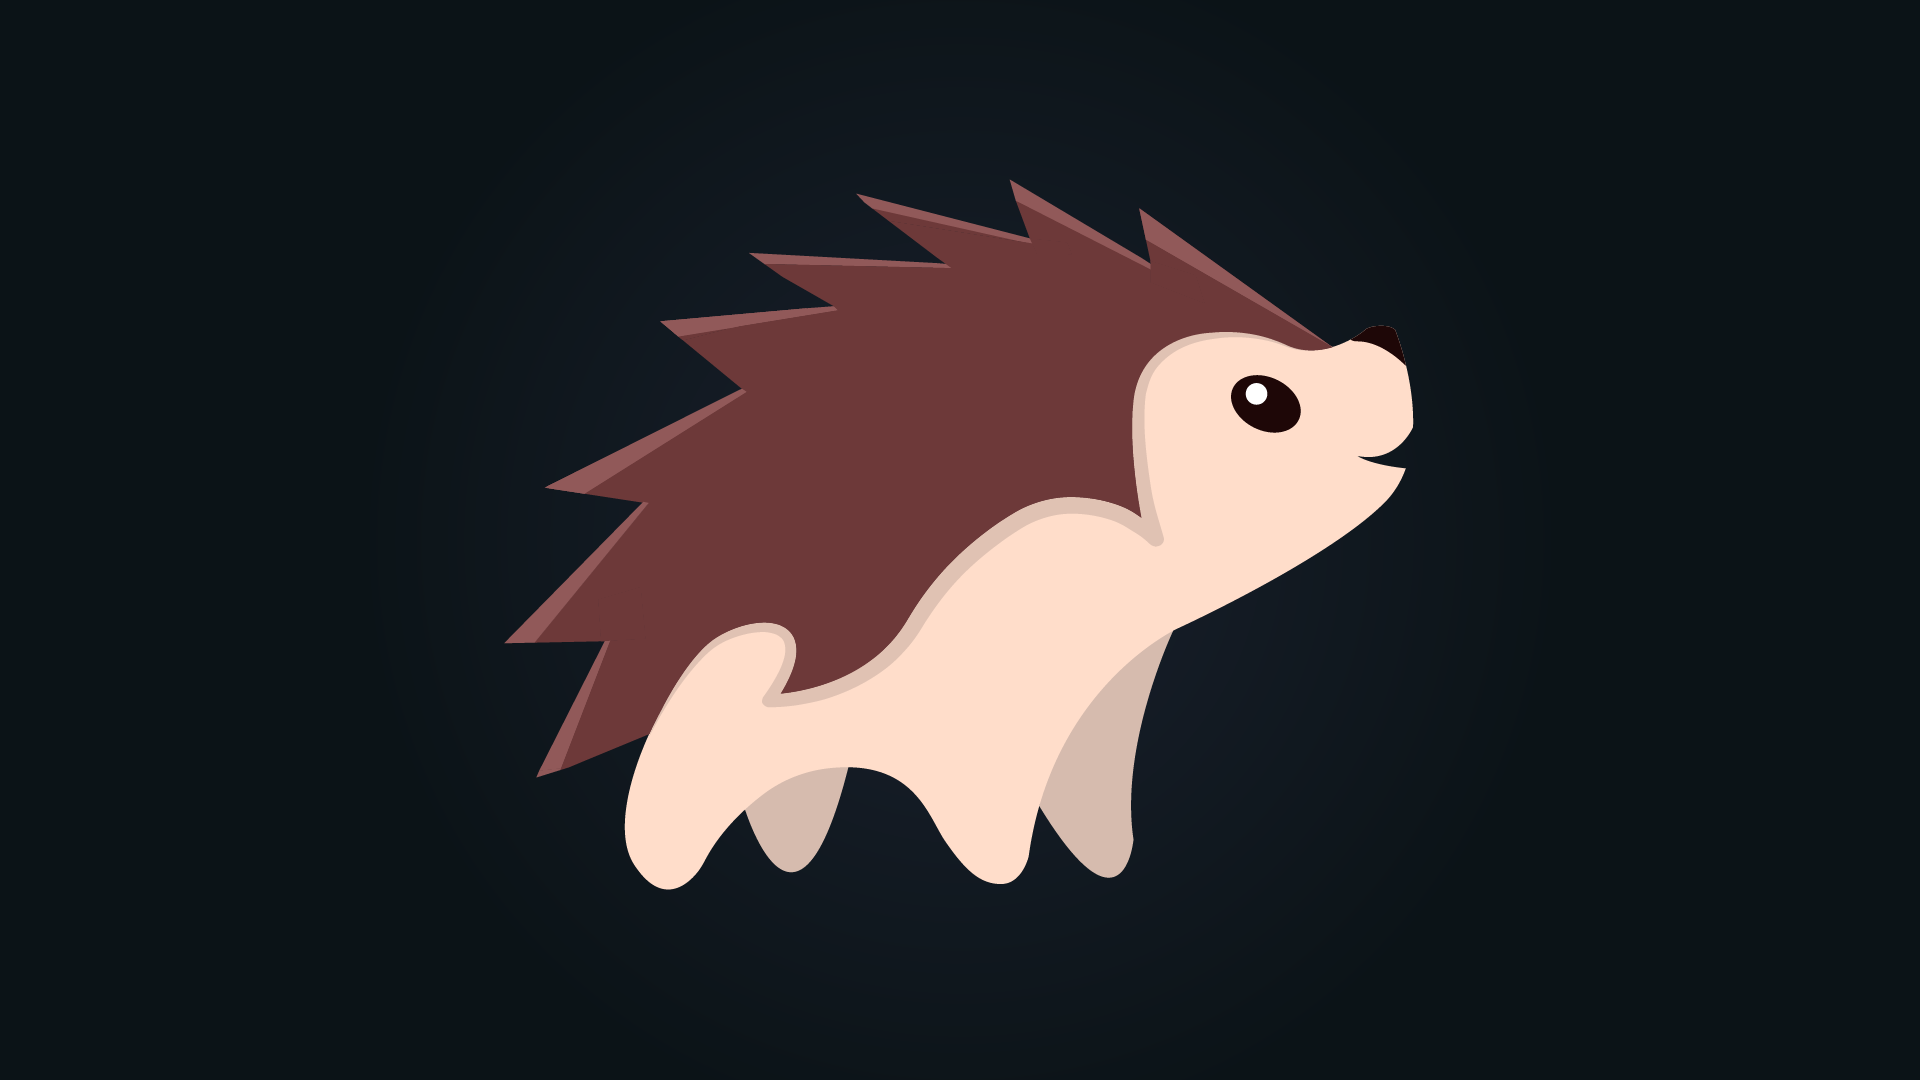 Minimal hedgehog